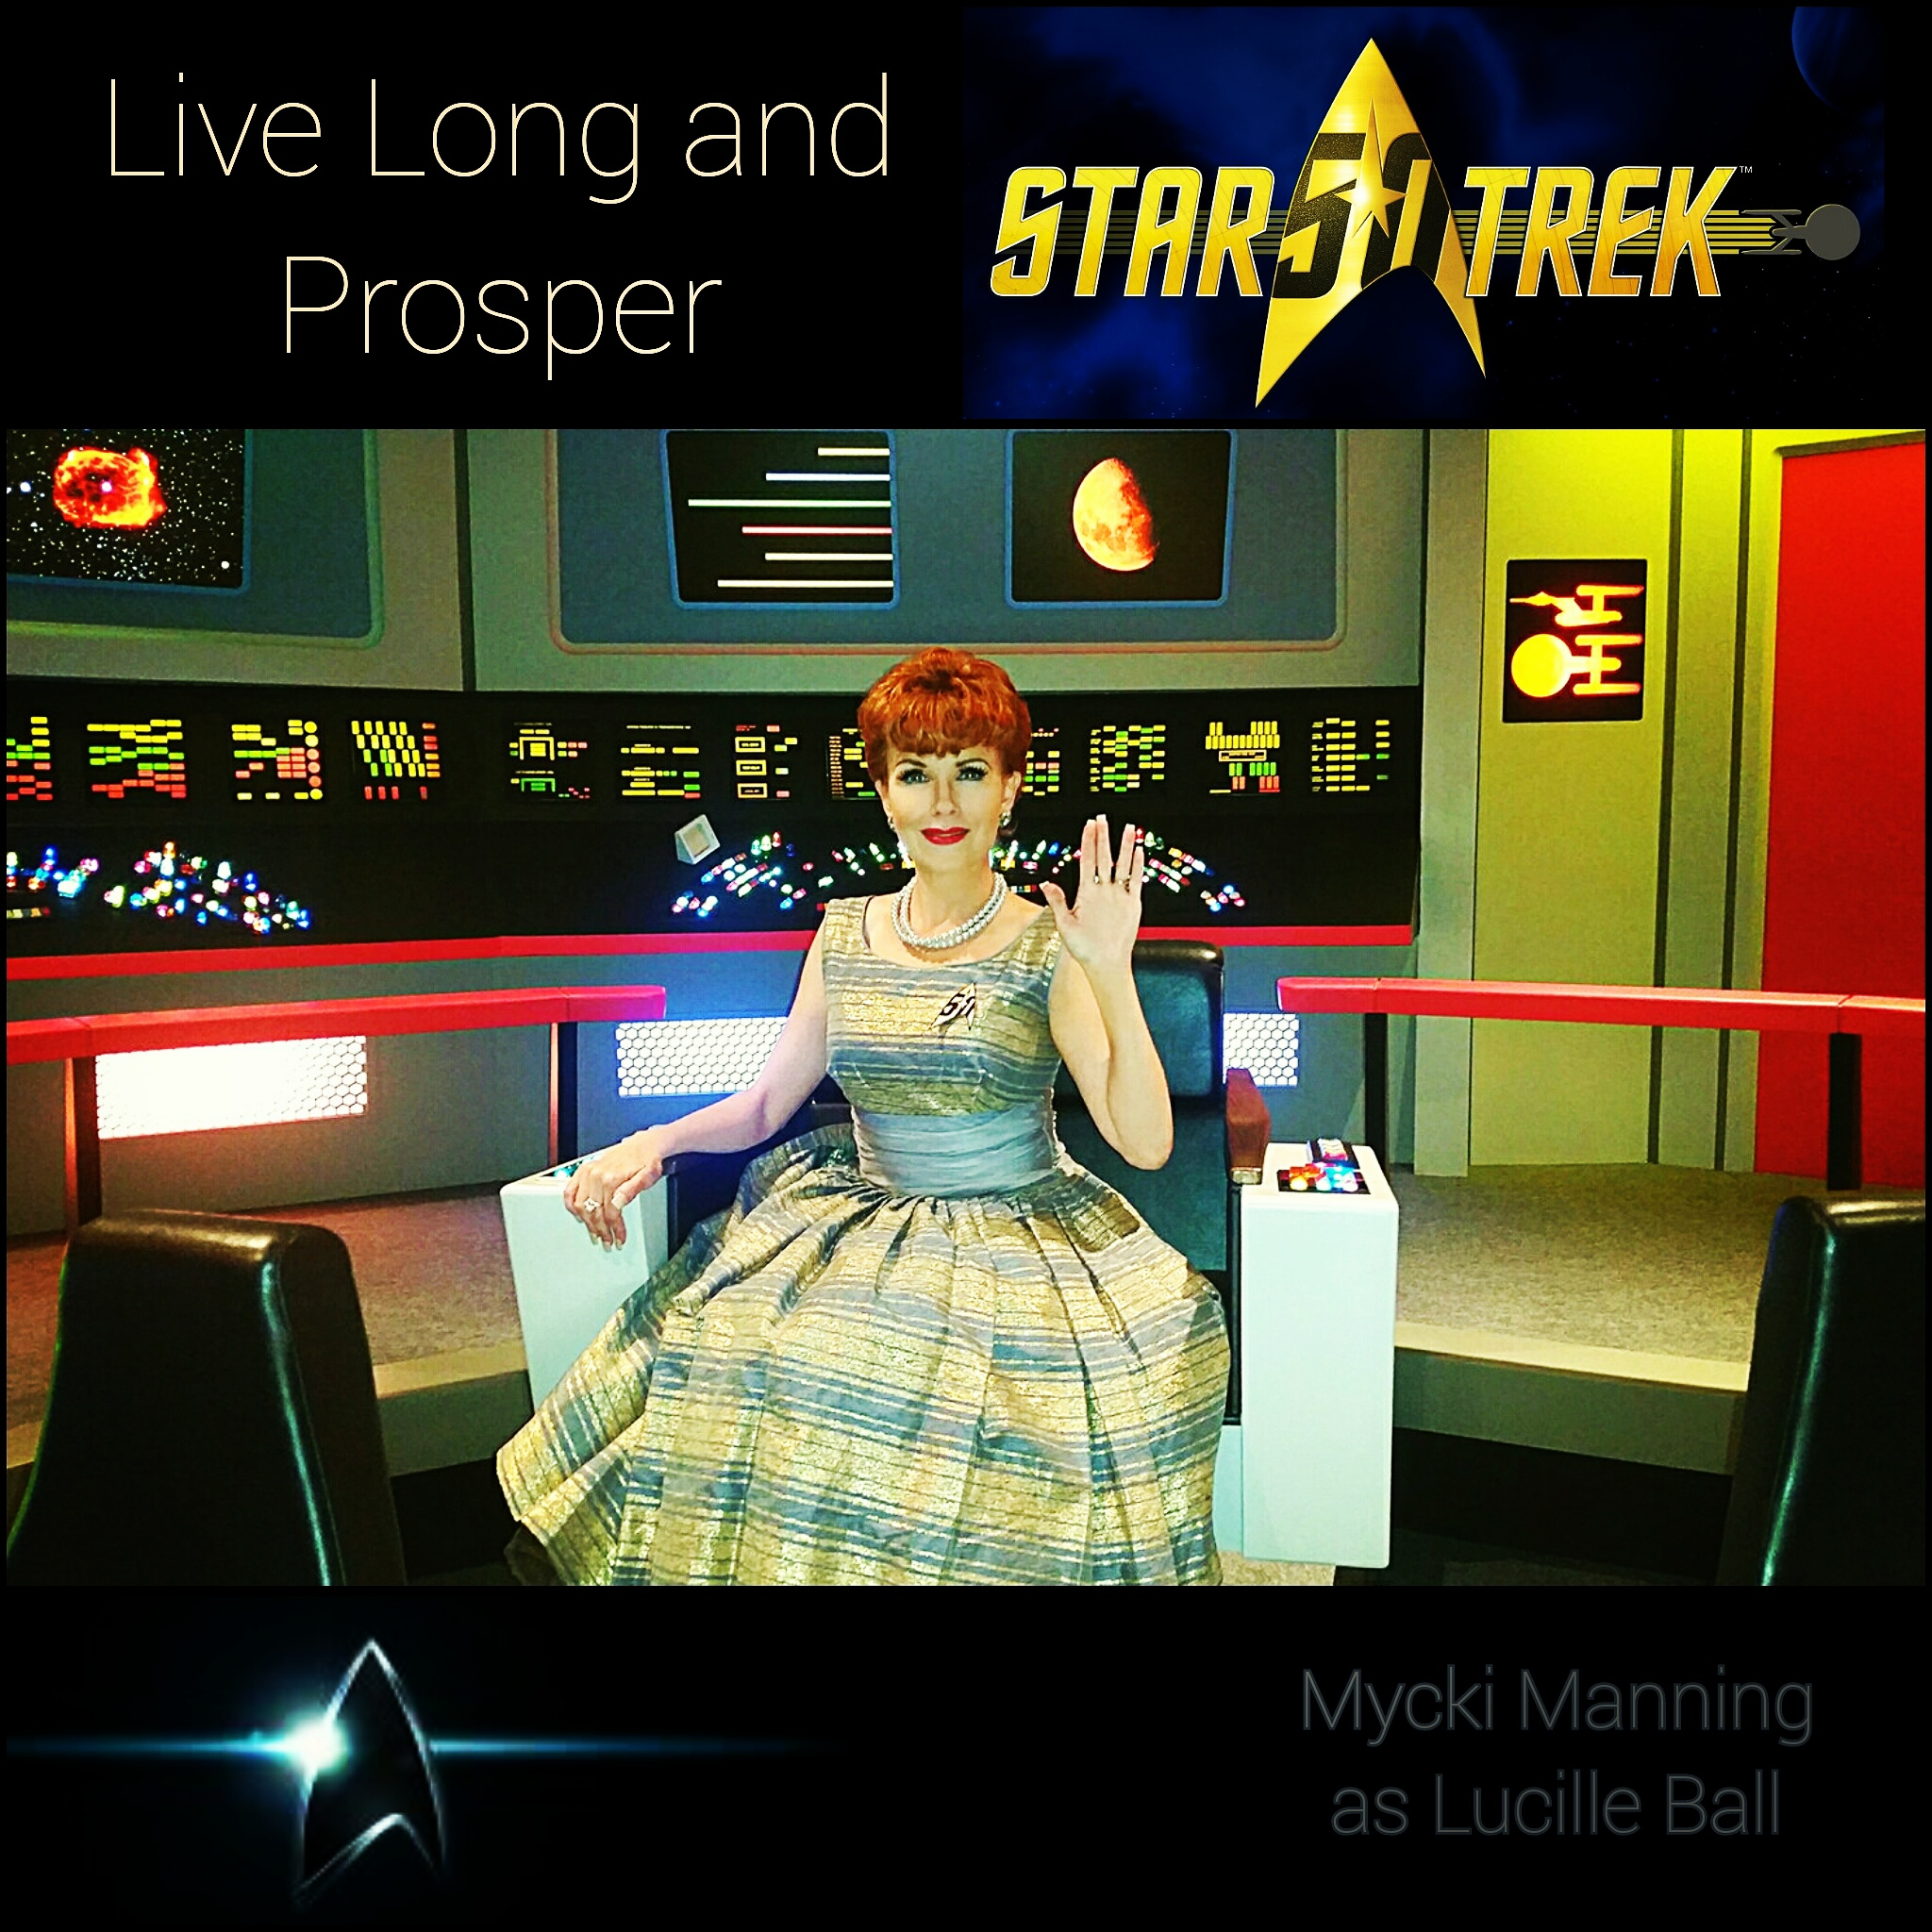 Lucille Ball Star Trek